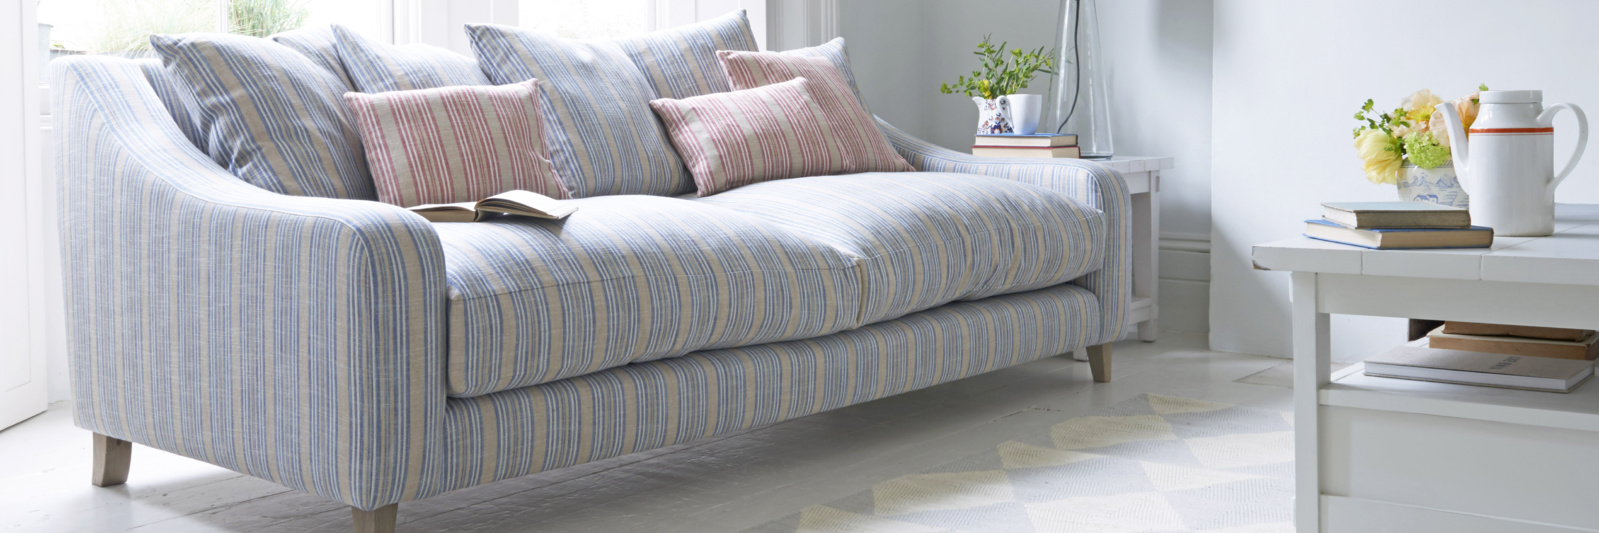 Oscar deep sofa in striped fabric